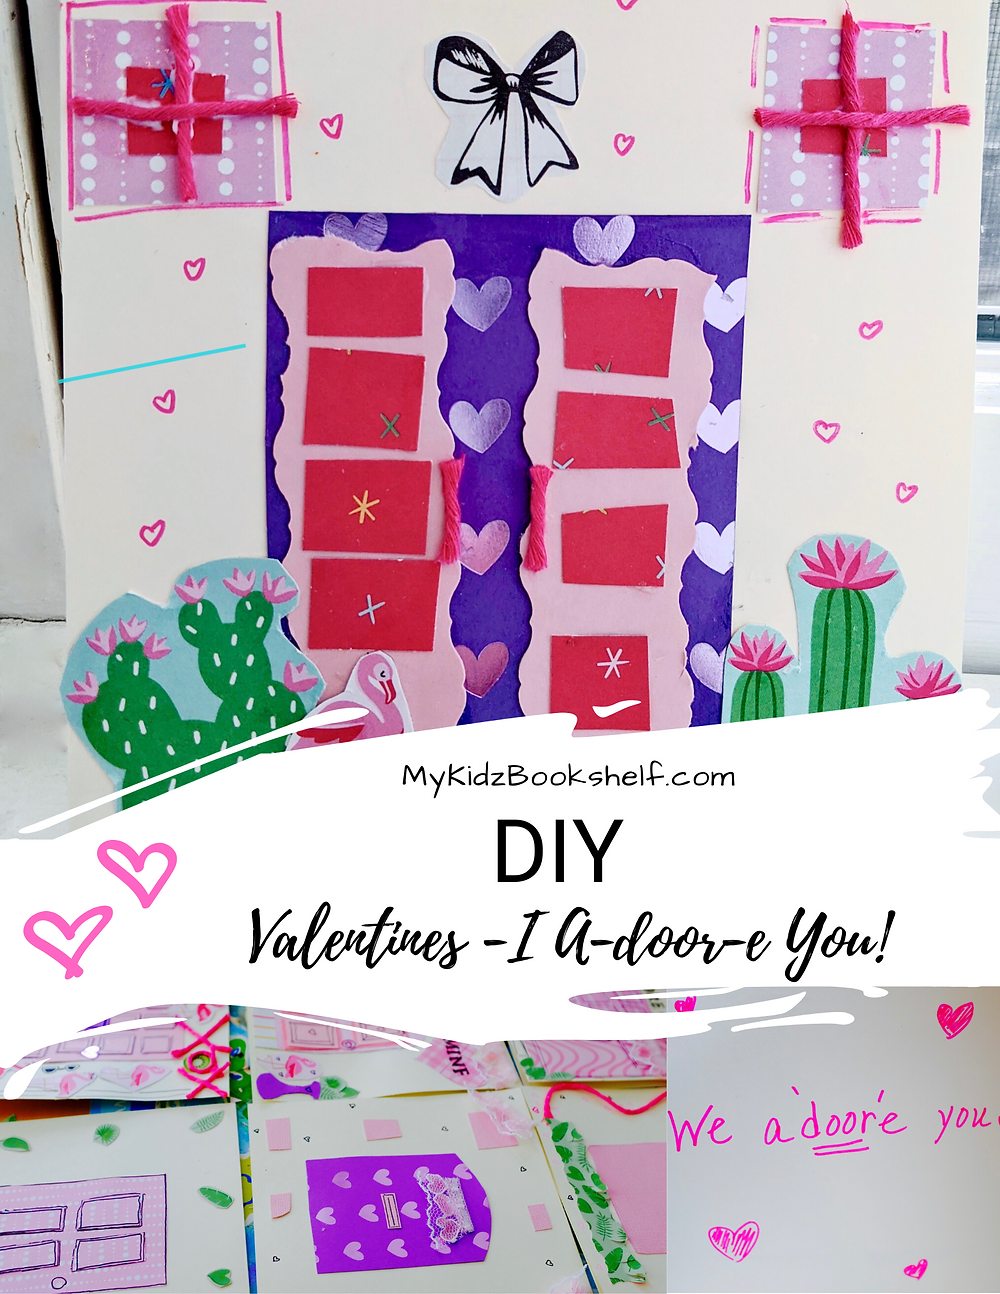 Valentines DIY card pinterest pin mixed media collage